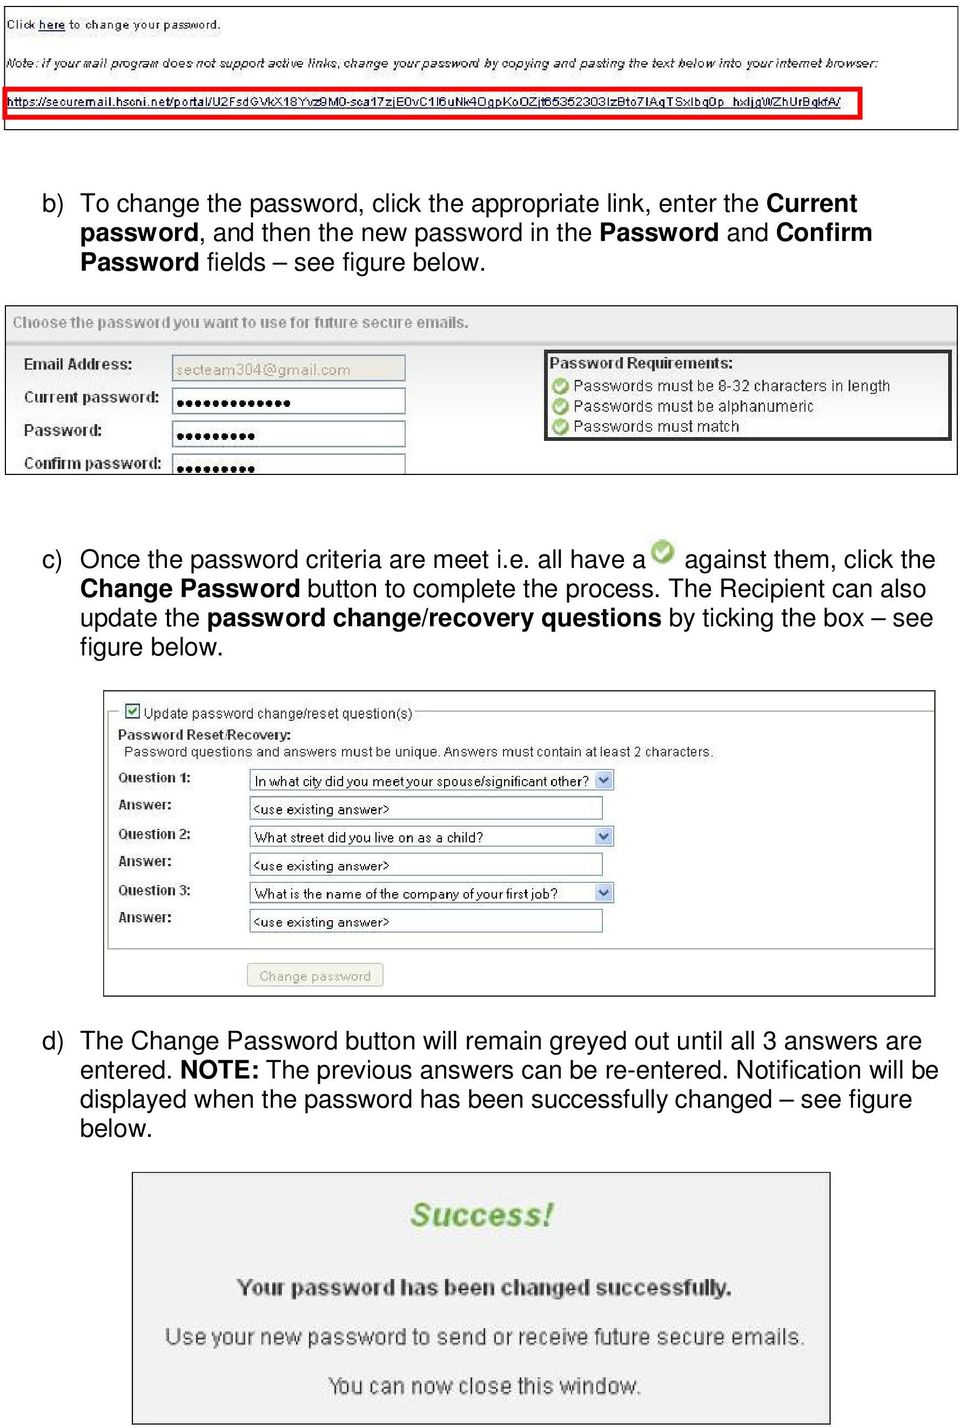 The Recipient can also update the password change/recovery questions by ticking the box see figure below.